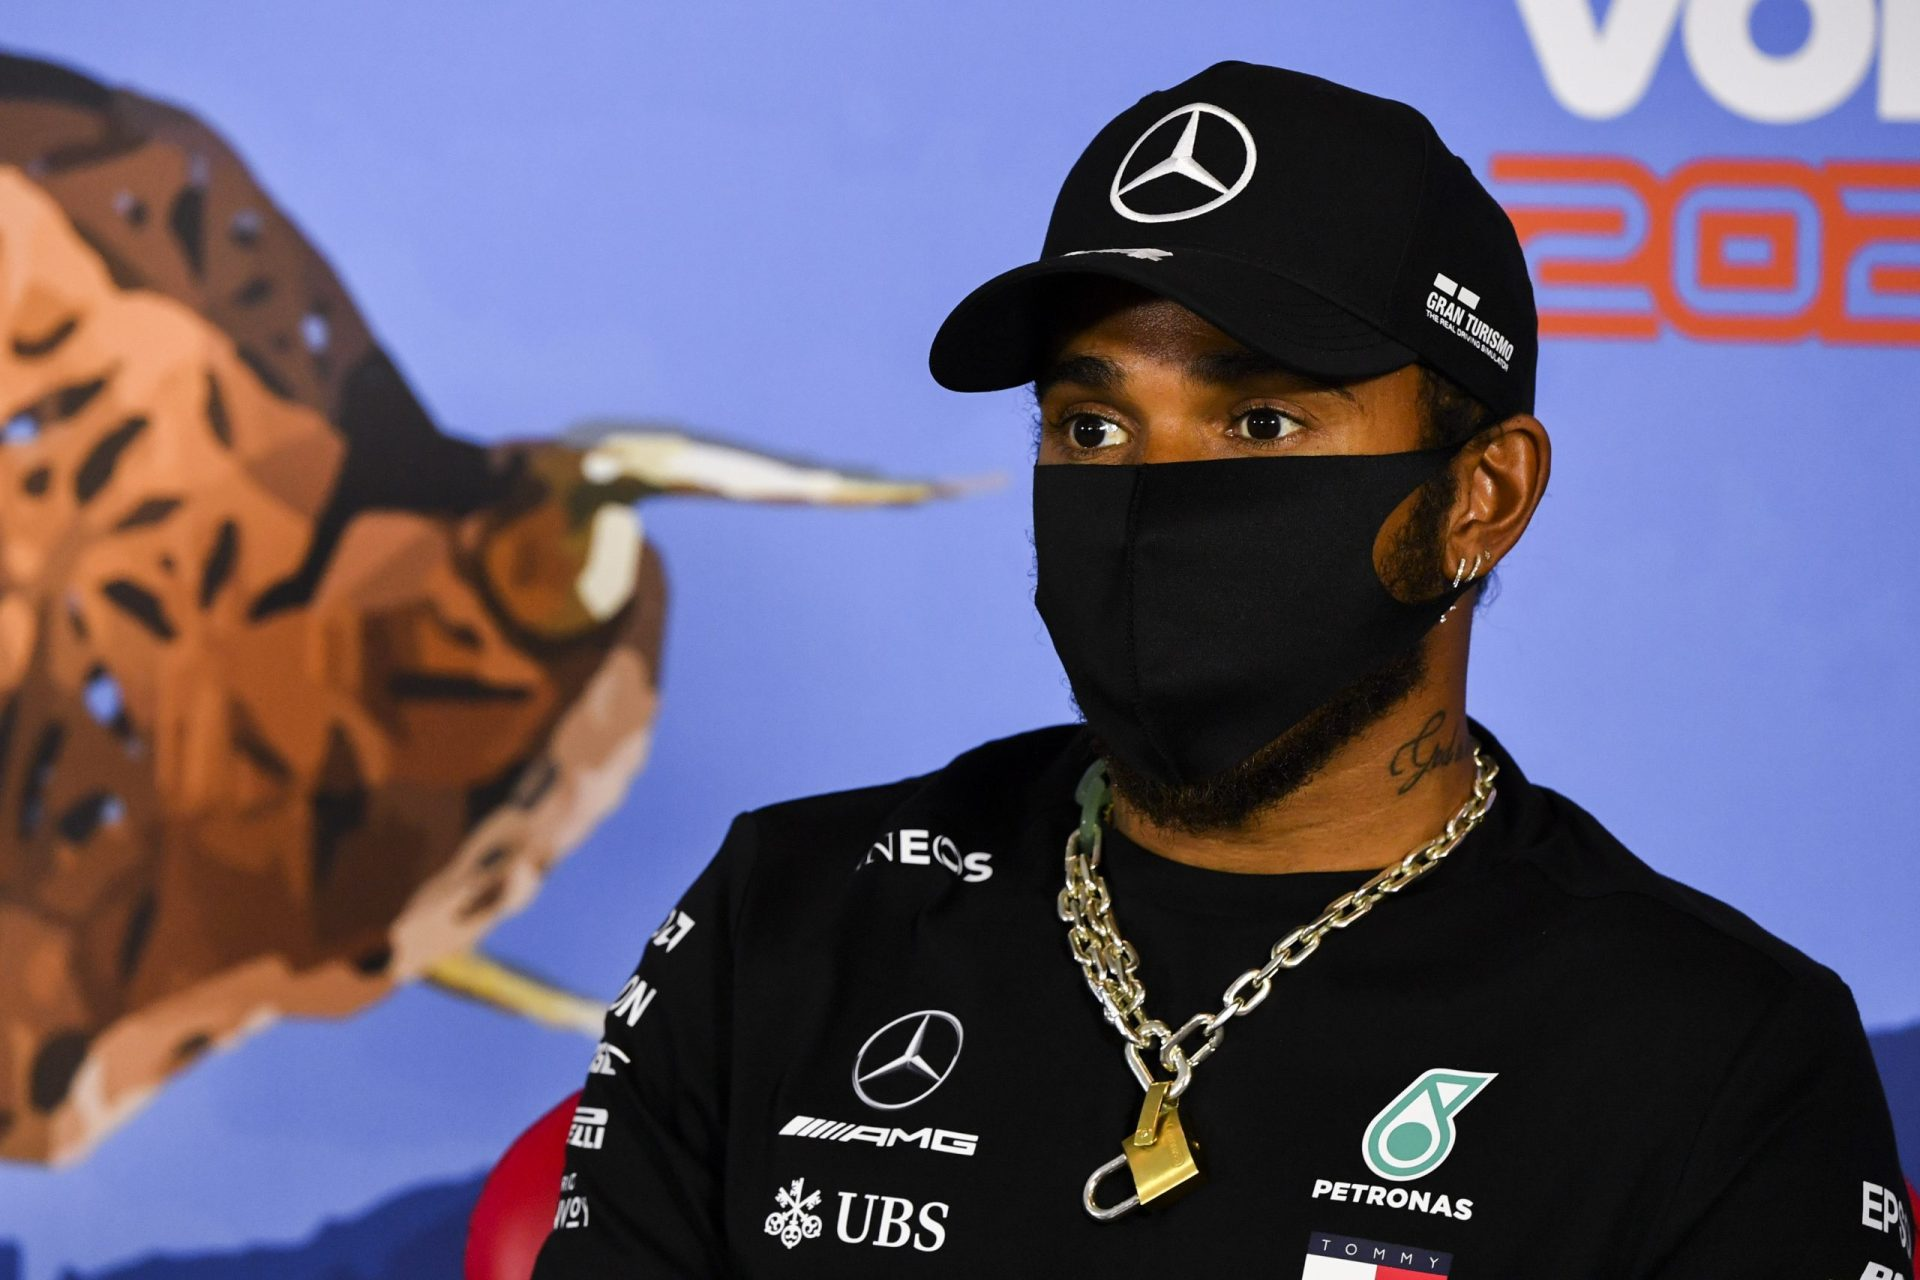 Lewis Hamilton and Valteri Bottas struggled with tyyre issues for the second consecutive week.